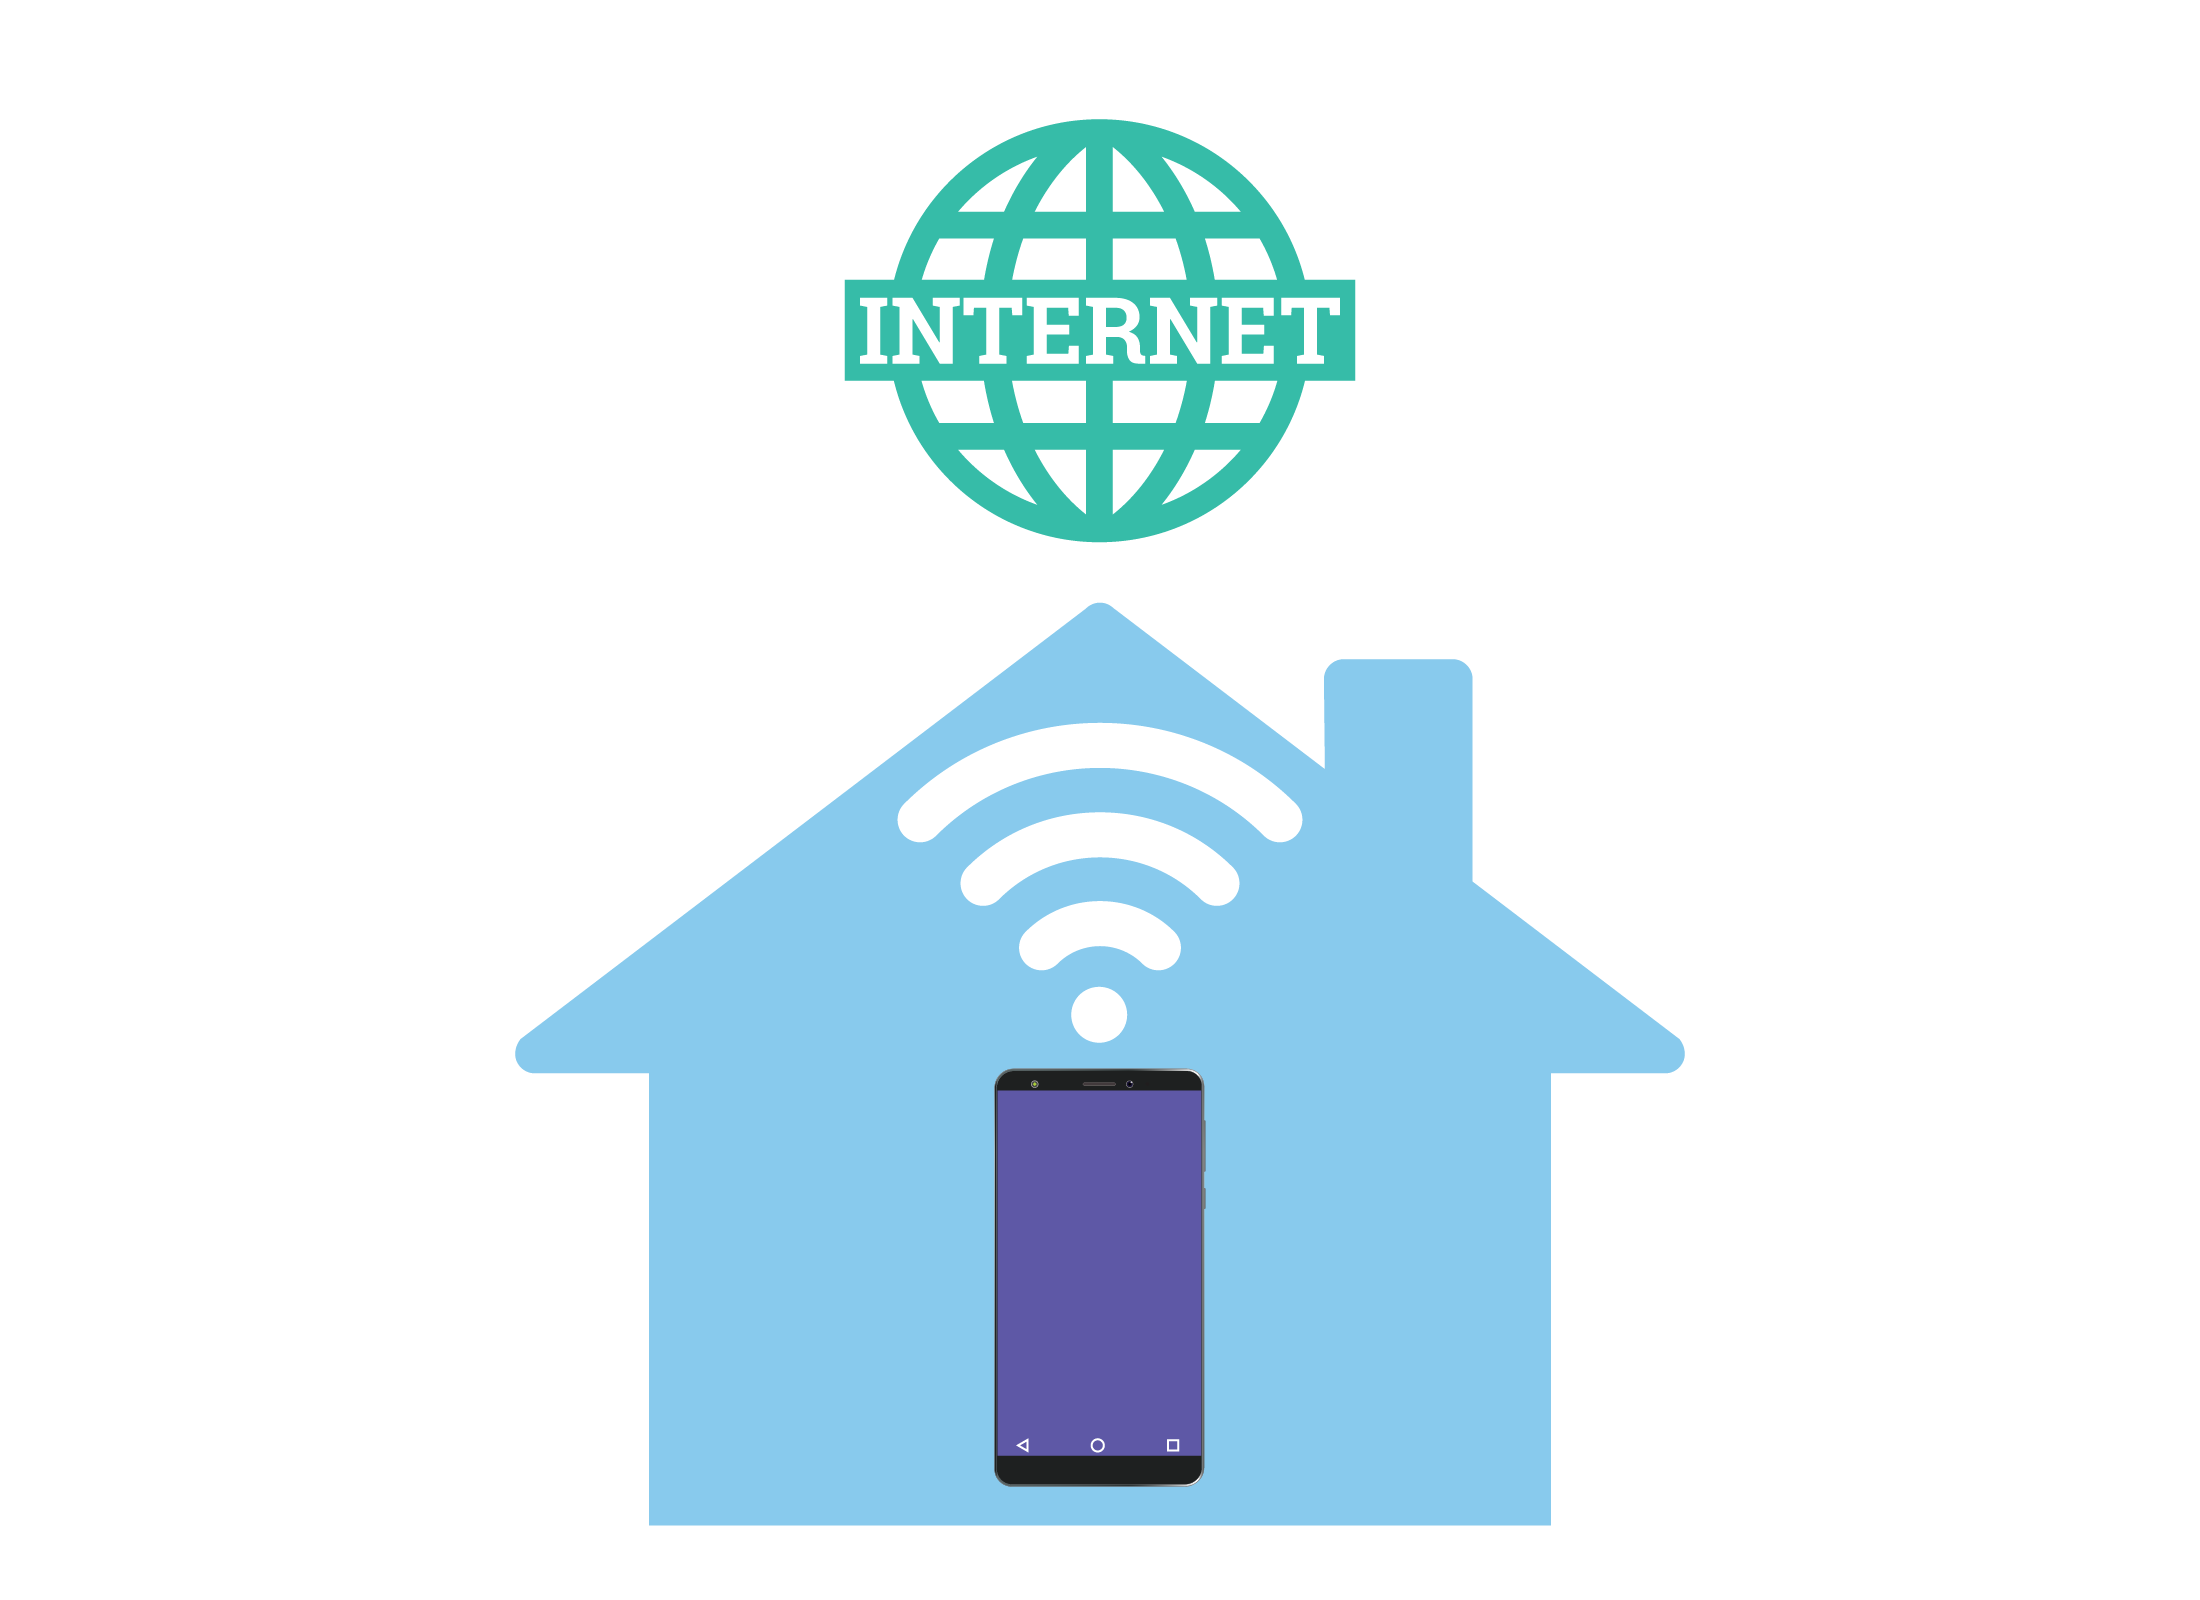 An illustration showing a smartphone in a home connecting to the internet using home Wi-Fi